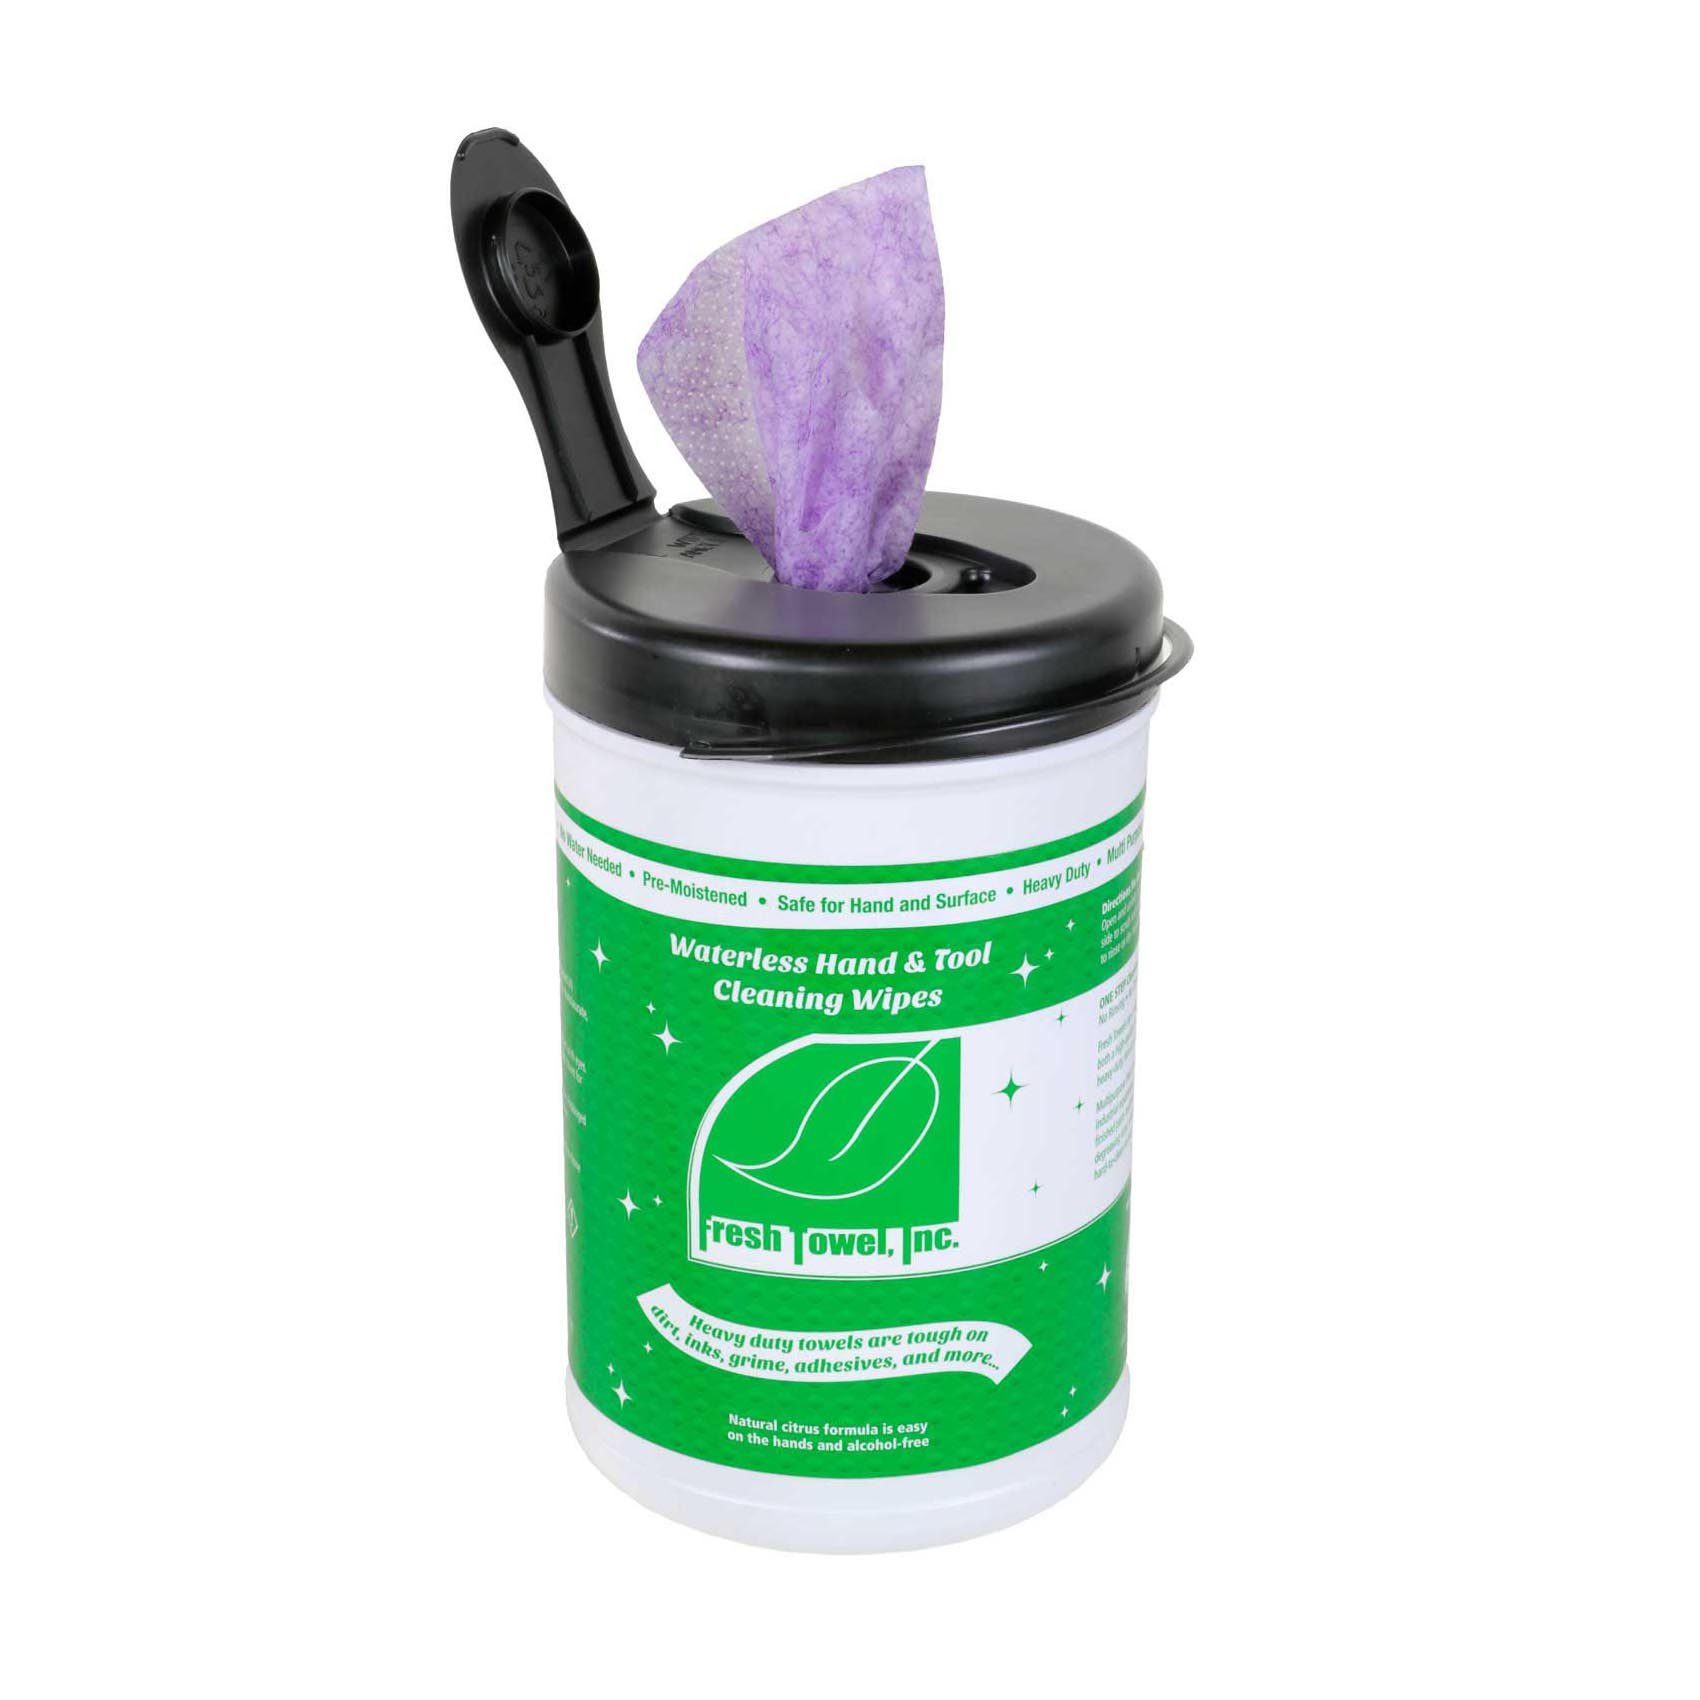 Waterless Hand & Tool Cleaning Wipes, 10'' Width x 12'' Length, Magenta Color (1 Canister of 75 Towels)